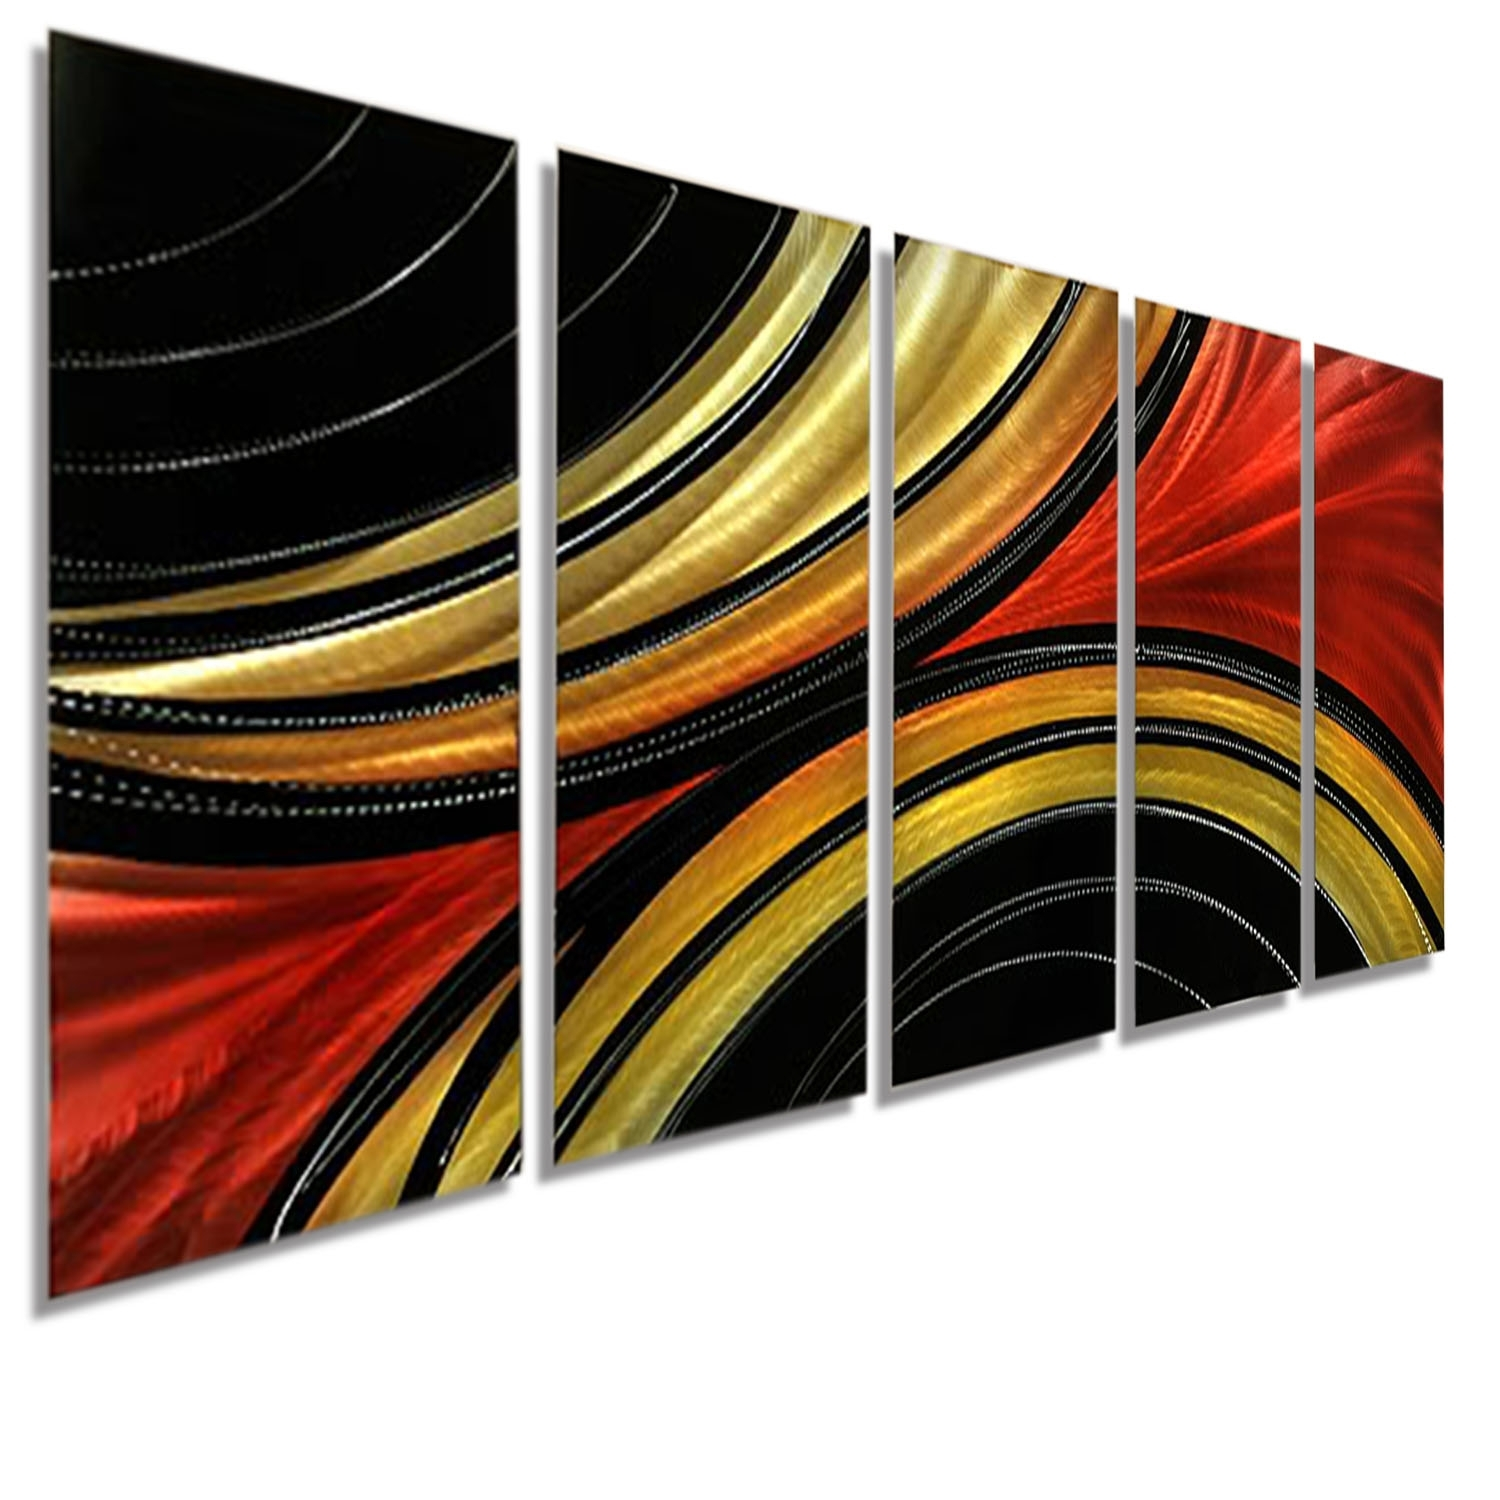 Solaris Xl – Massive Metal Abstract Red Black Gold Painting Wall Art With Newest Black And Gold Wall Art (Gallery 18 of 20)